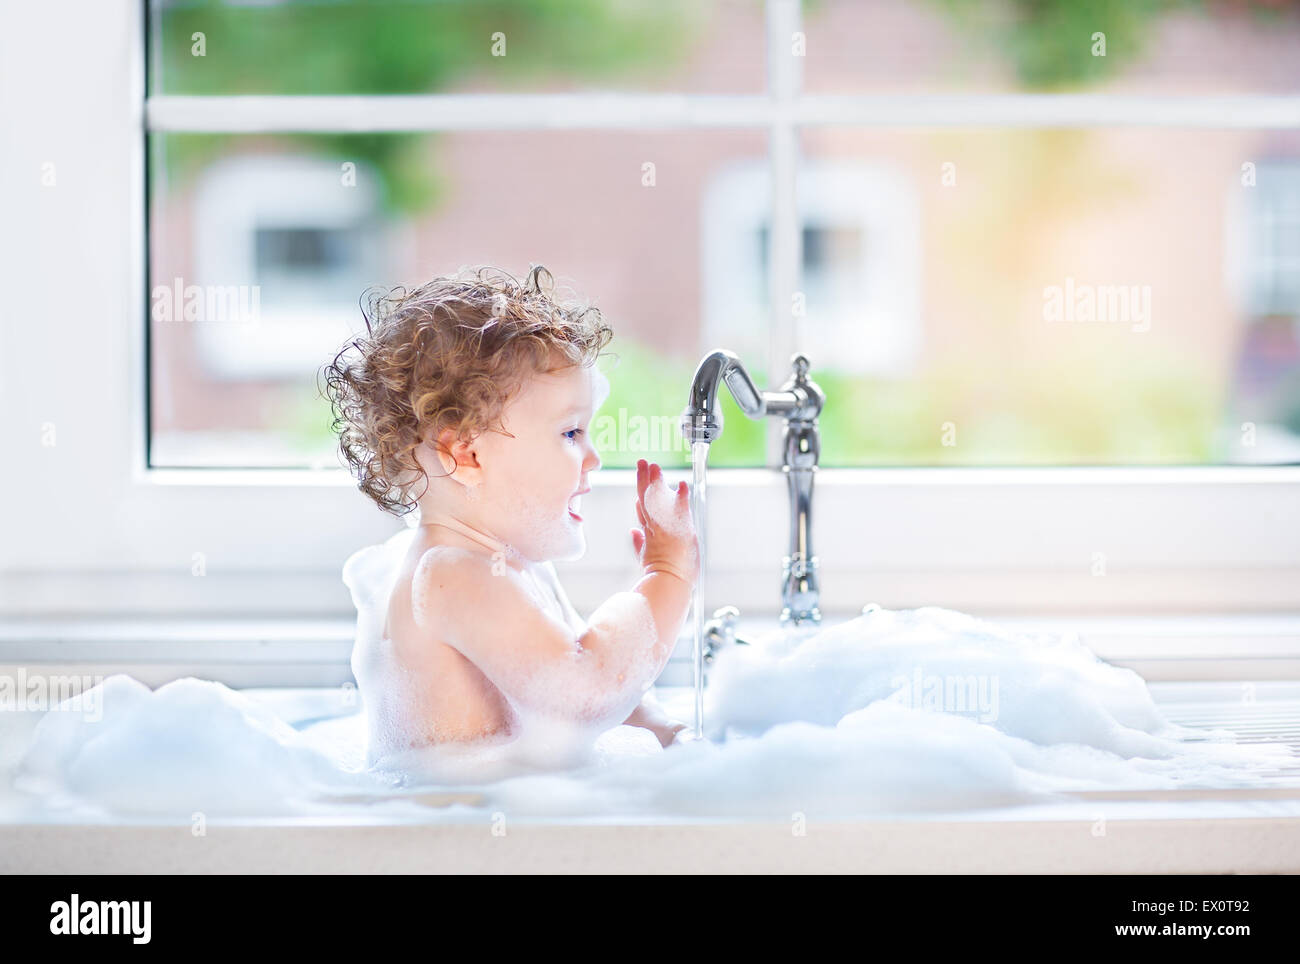 Funny happy baby girl playing in a kitchen sink full with foam next ...